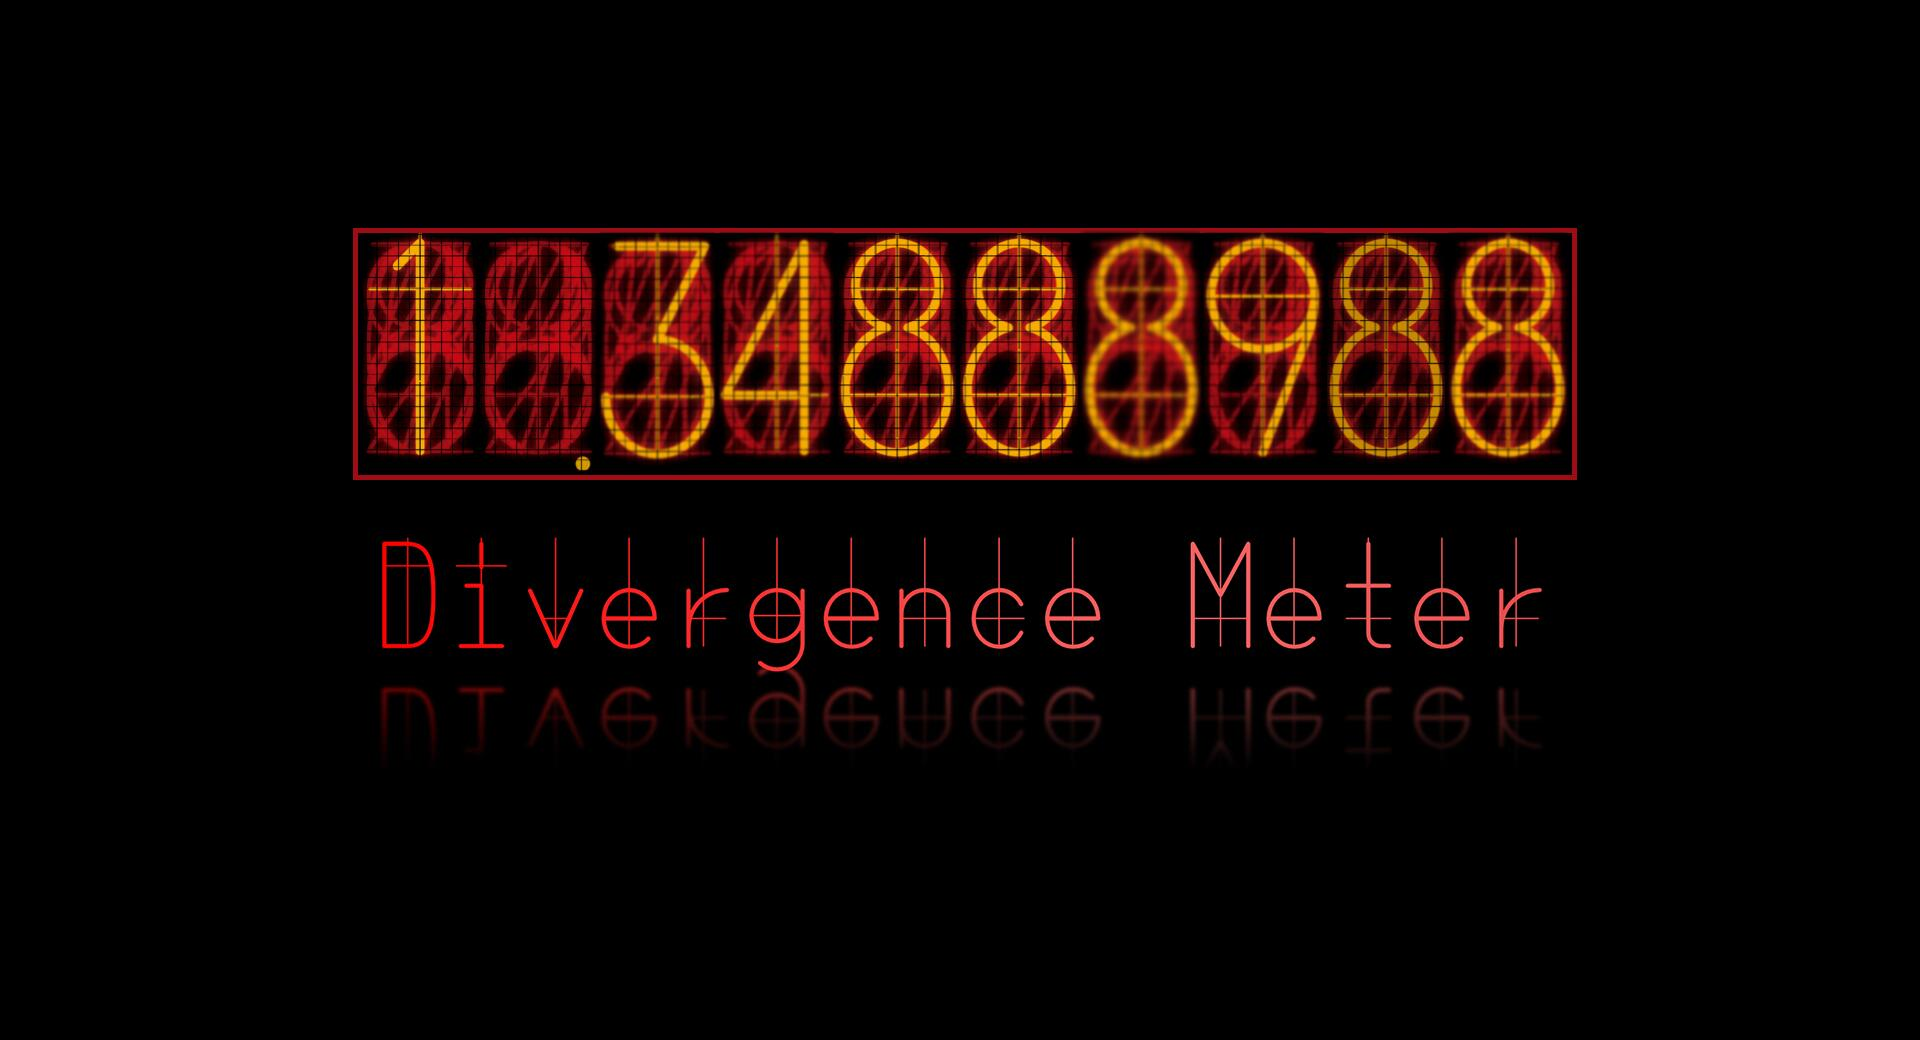 28+ Steins Gate Divergence Meter Anime Pics